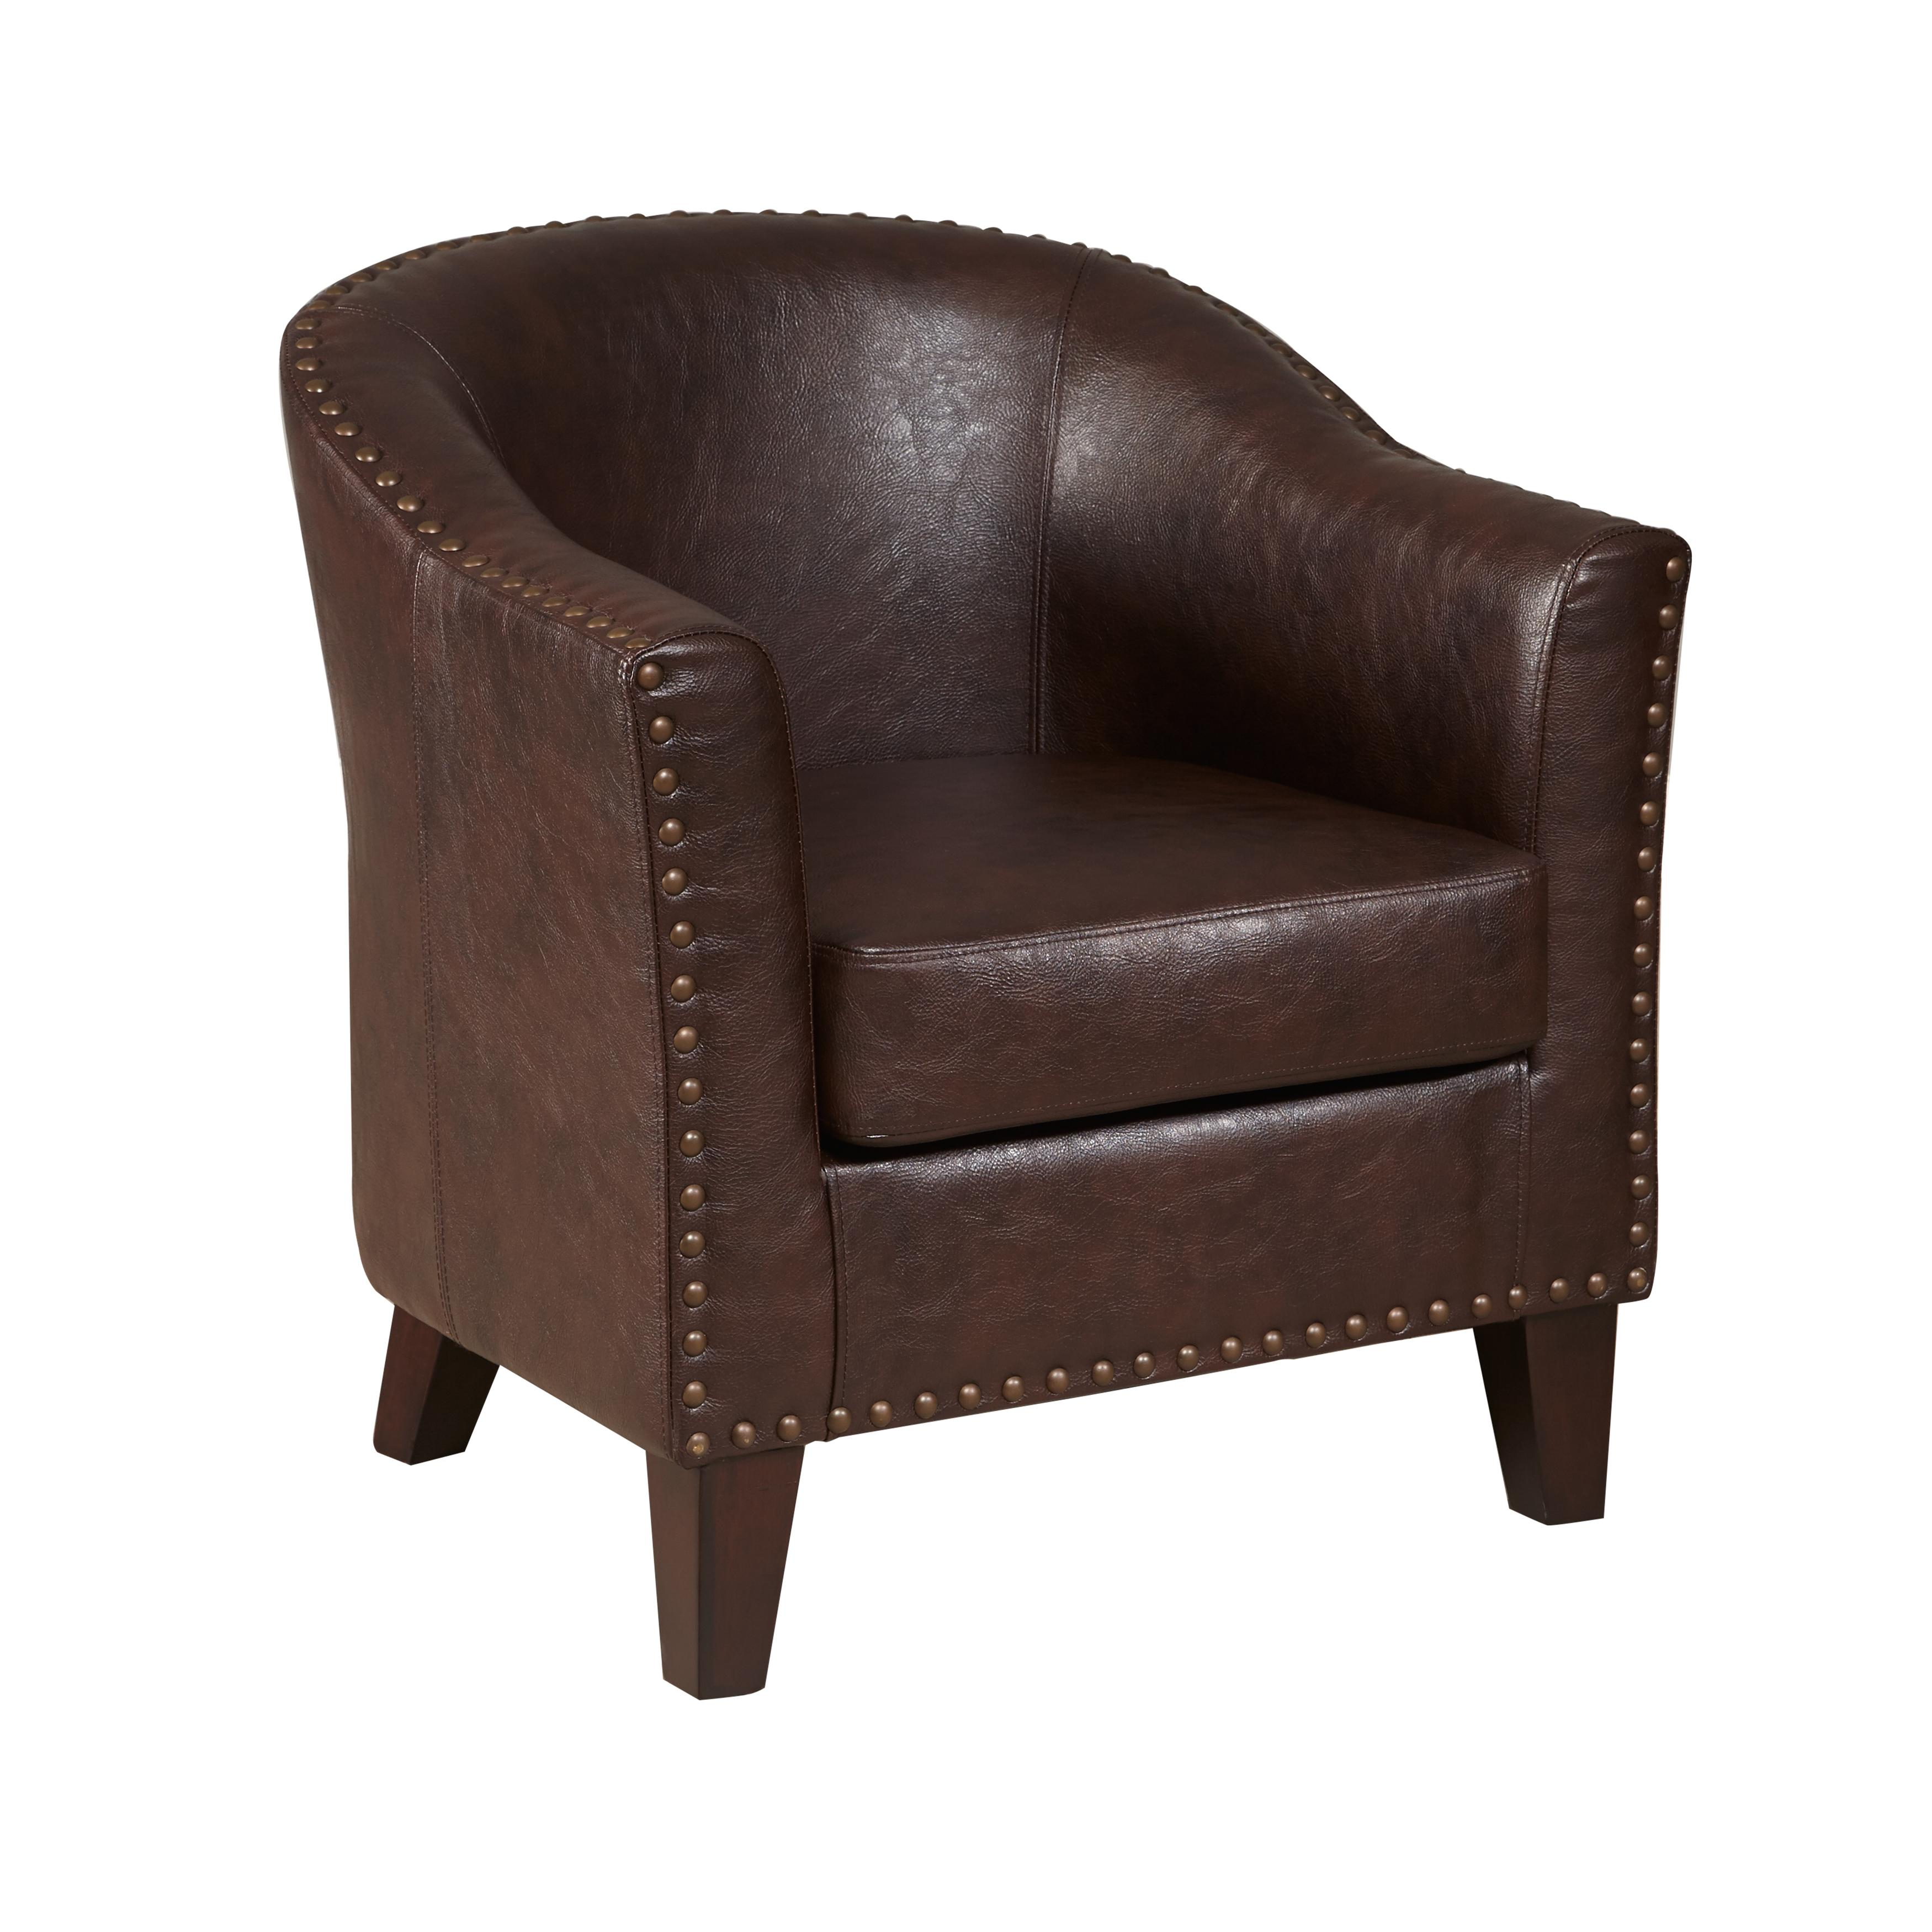 Tan Leather Accent Chair: Pulaski Faux Leather Barrel Accent Chair, Medium, Brown